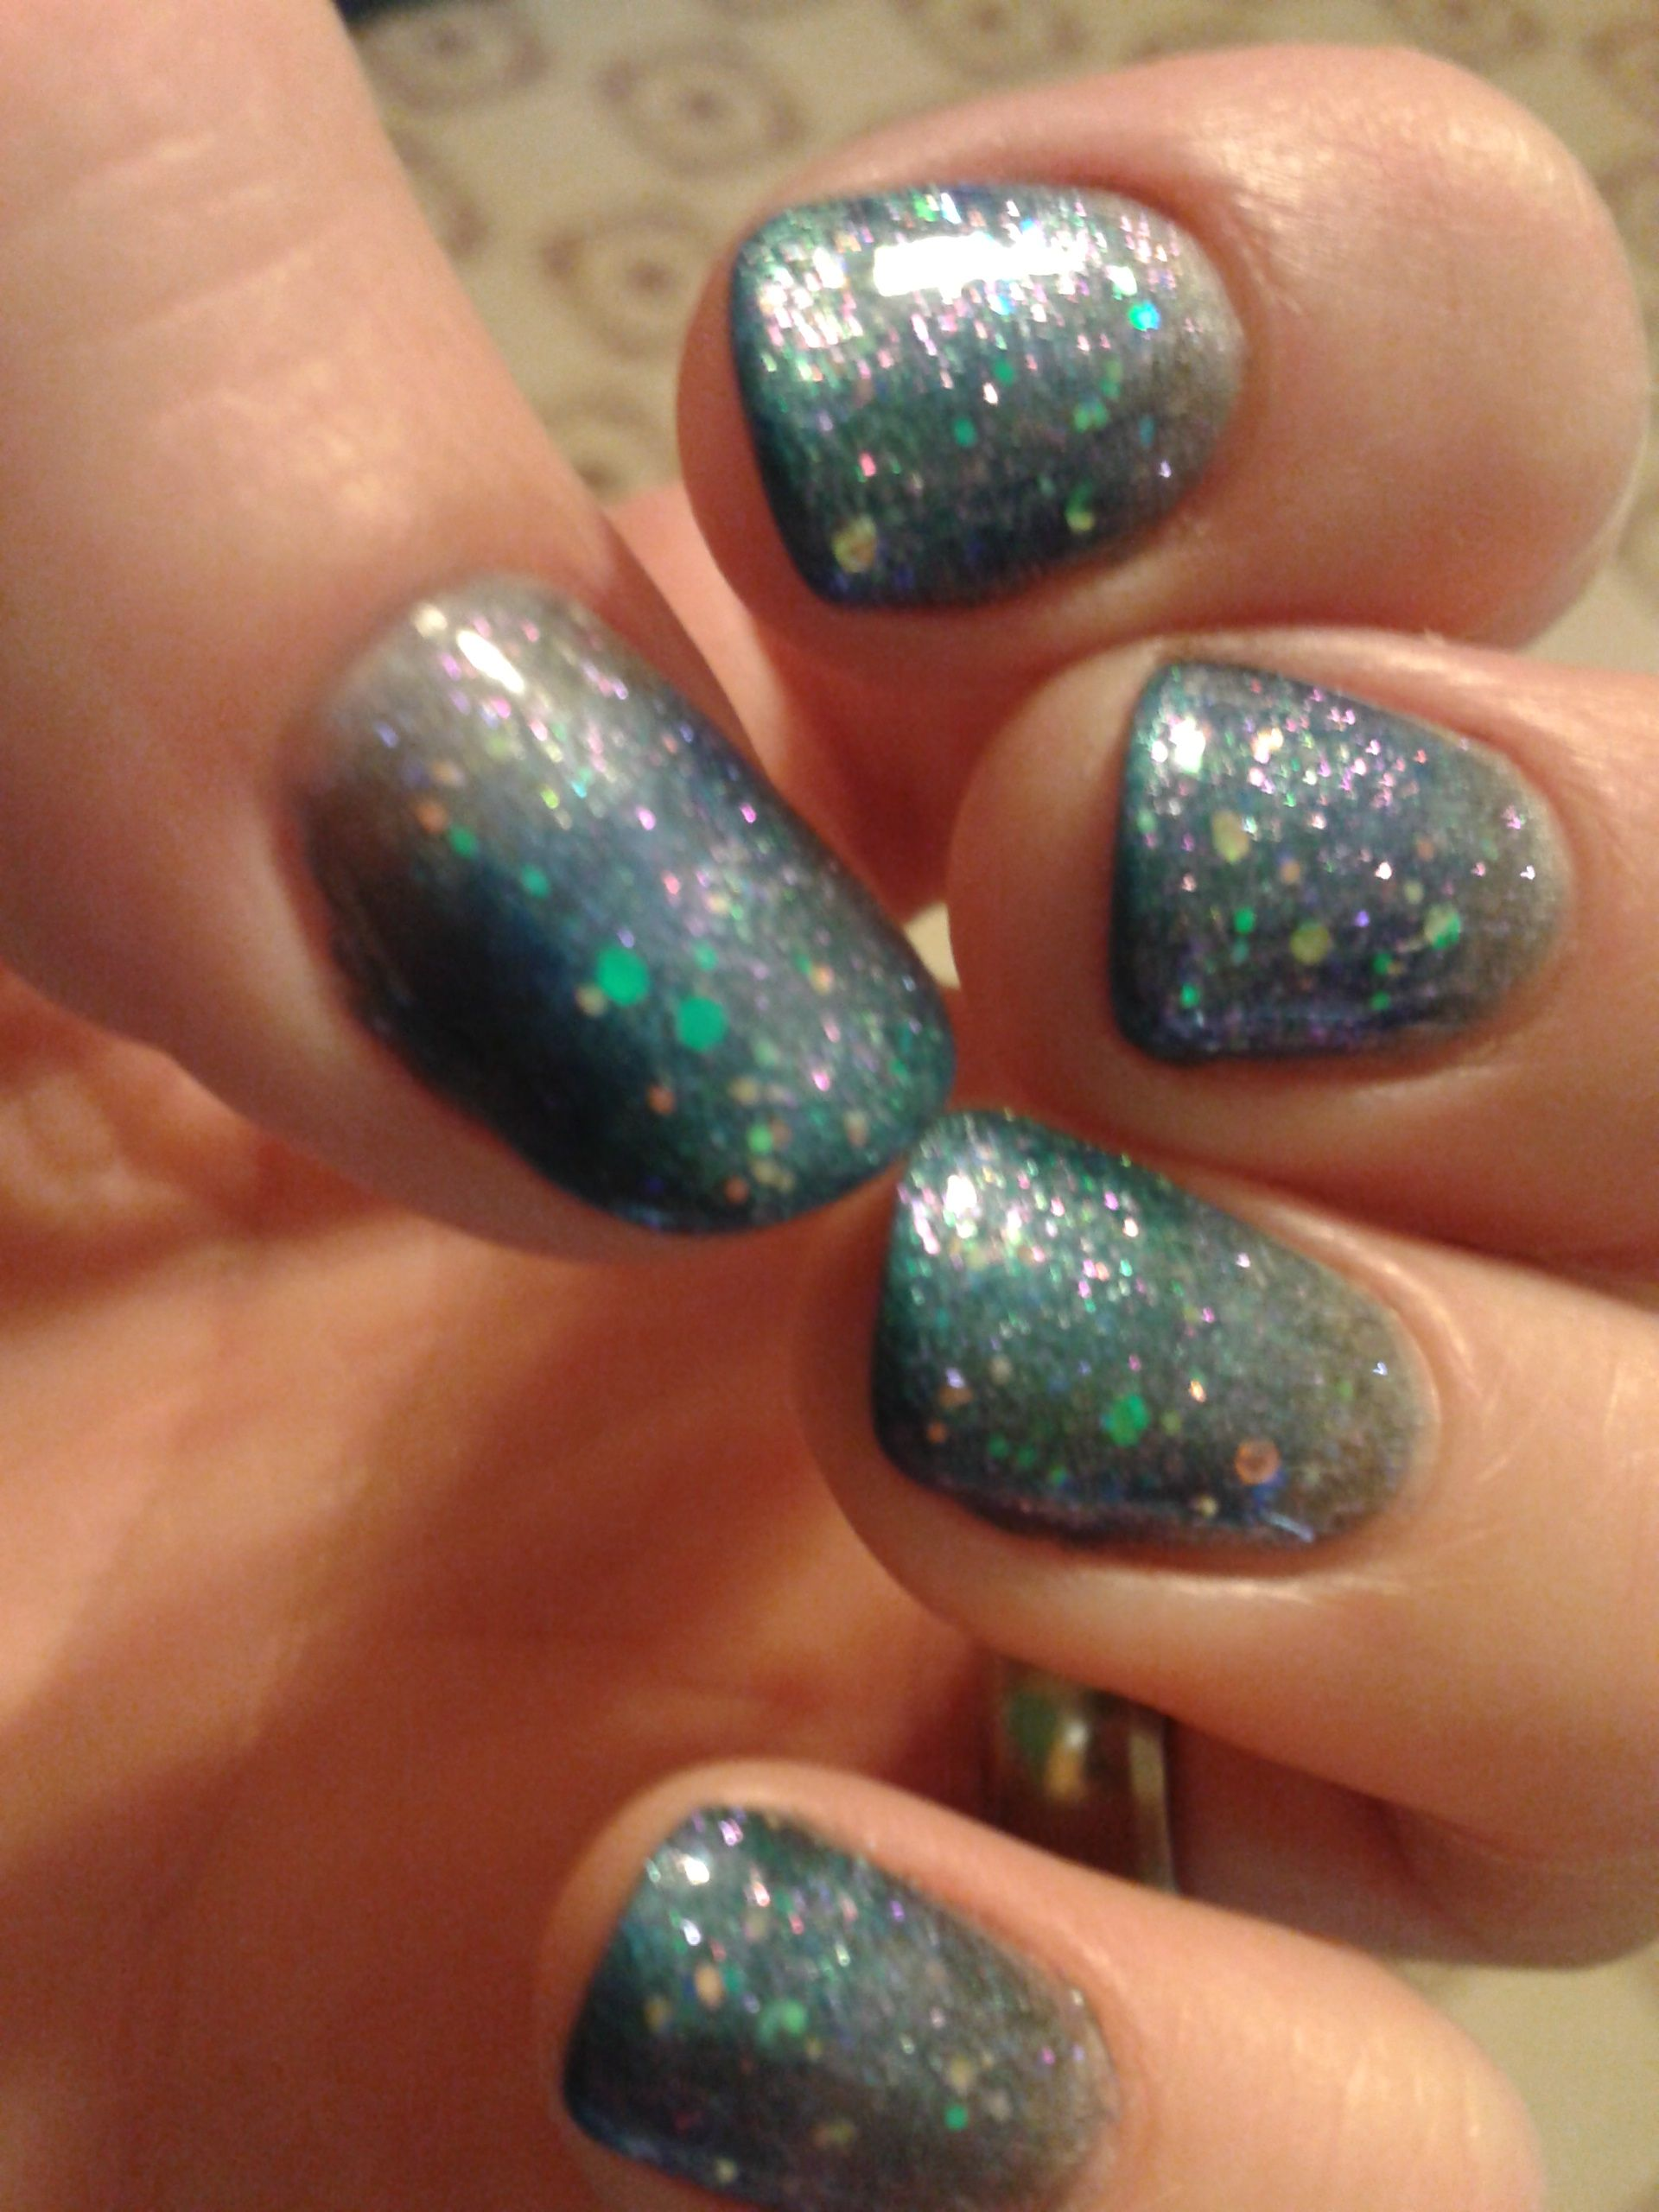 Gelish soak off gel nail polish, Midnight caller fade with mixture ...